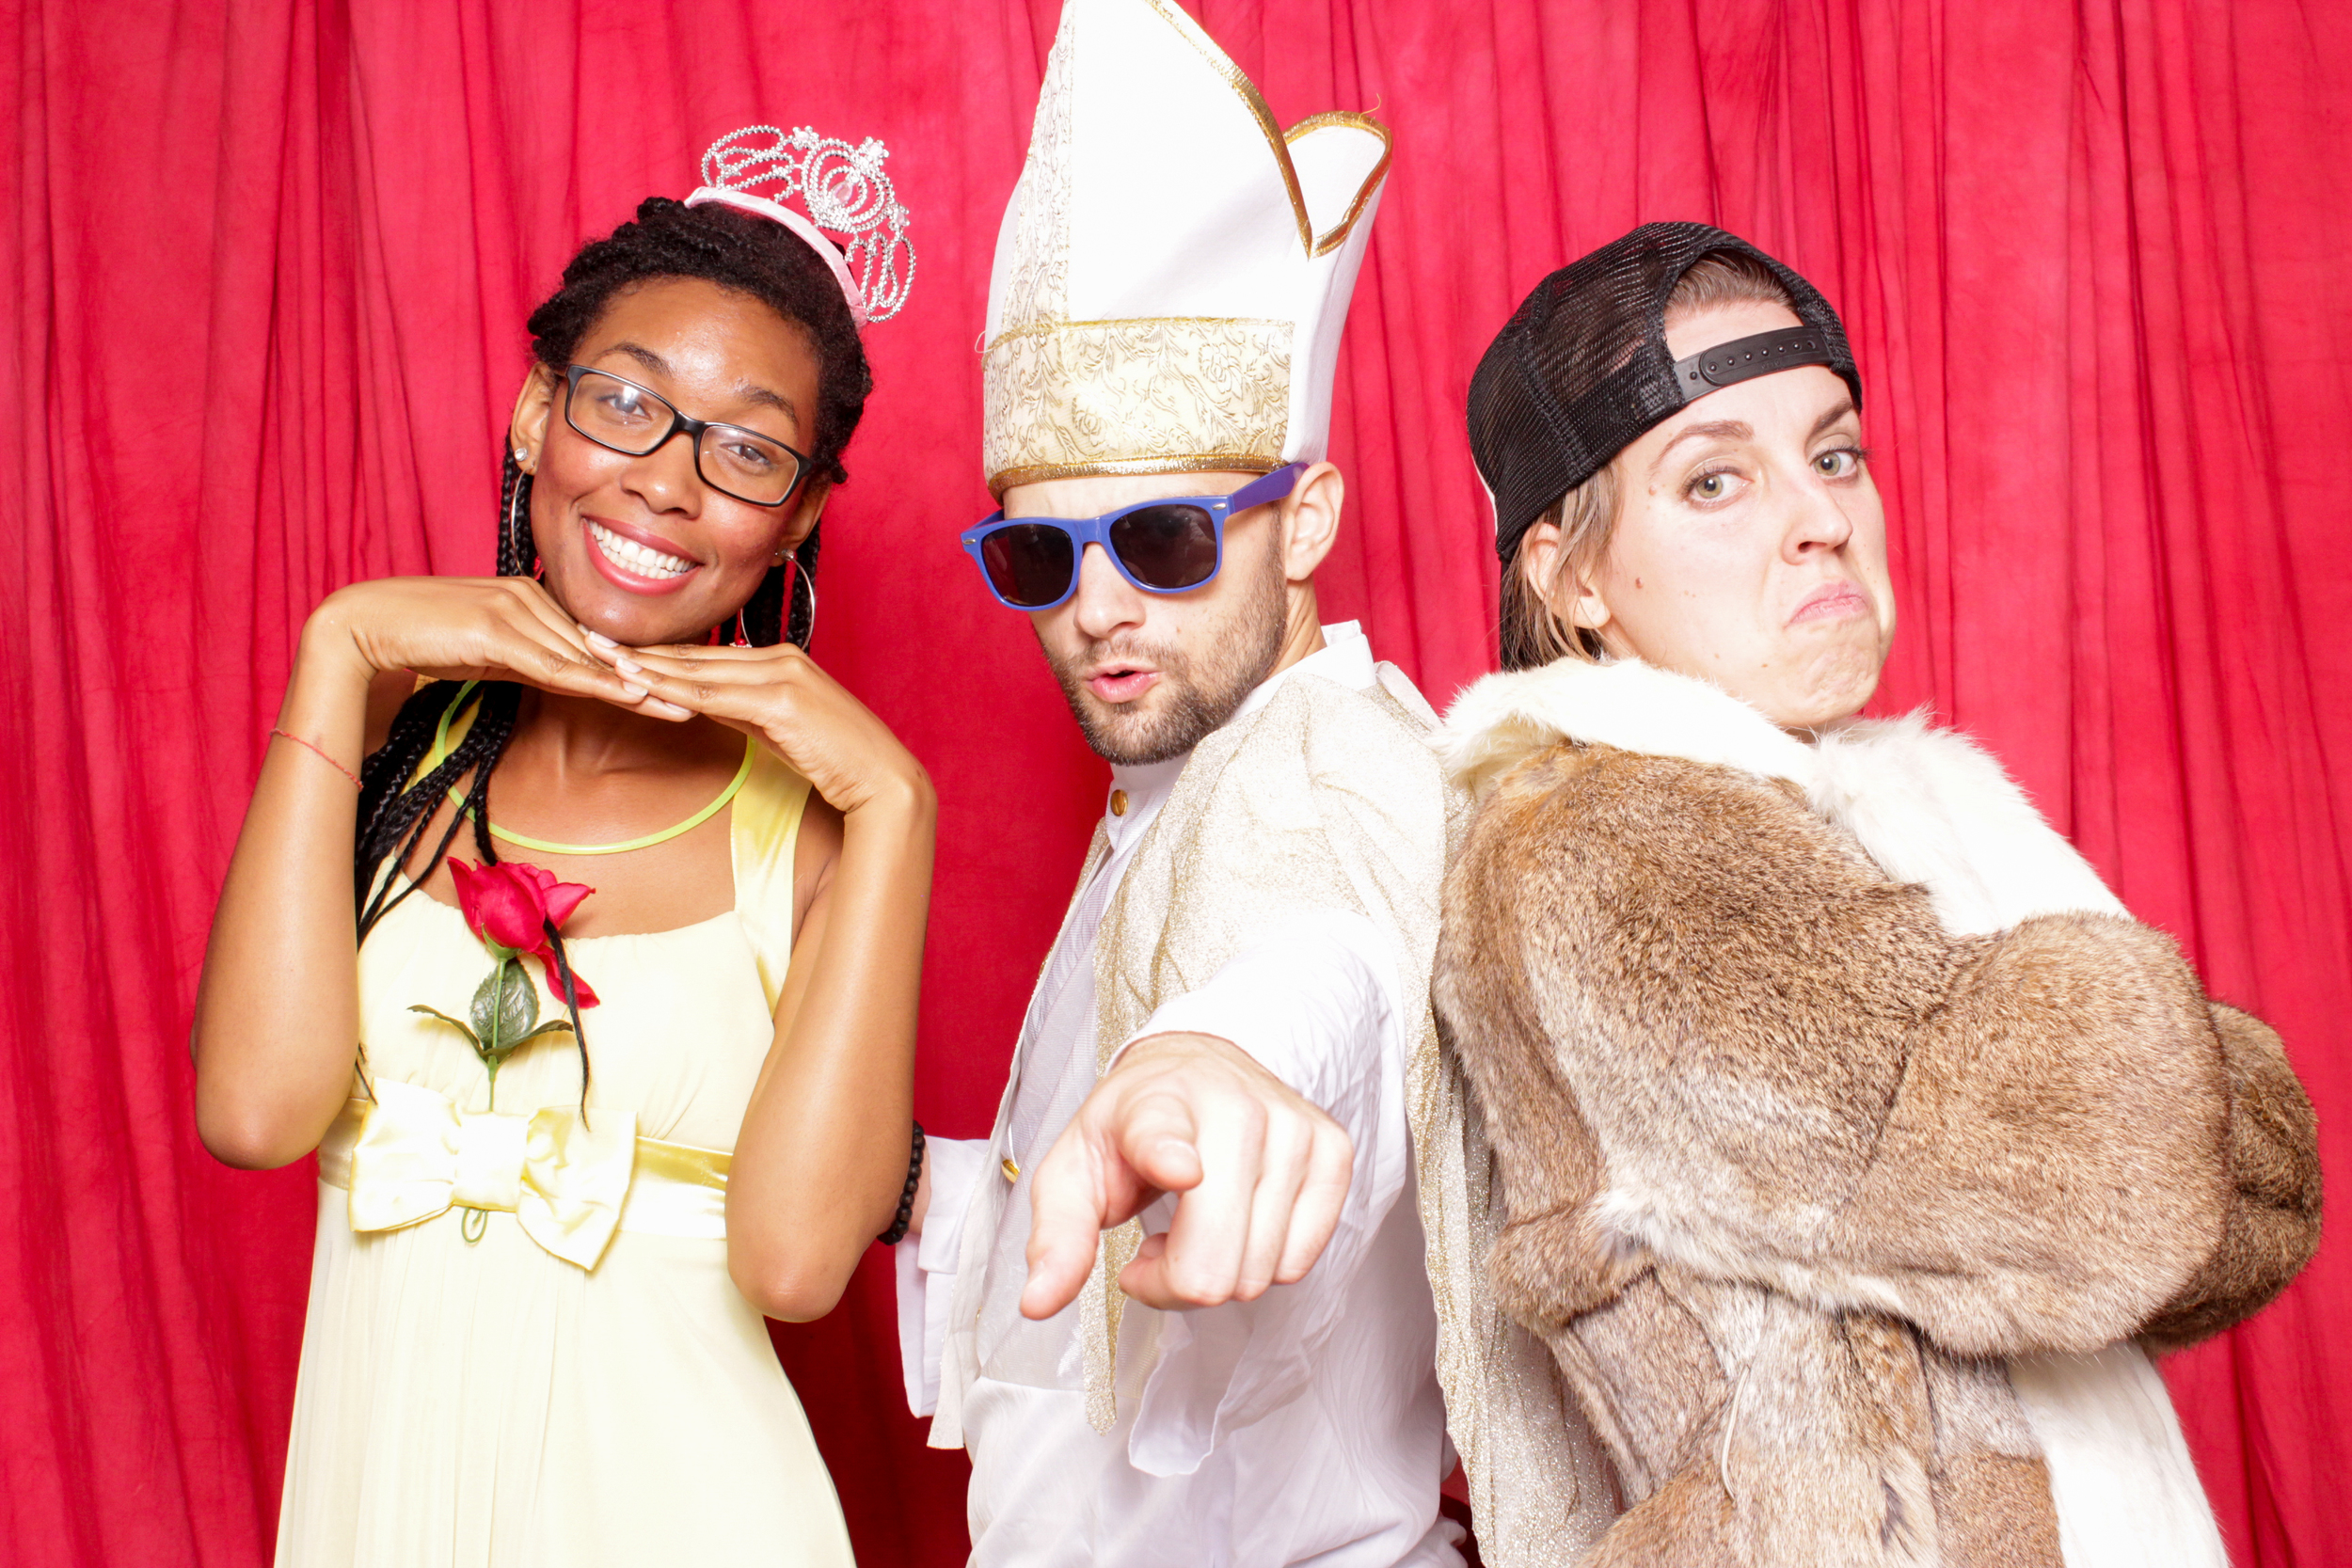 chico-photo-booth-rental-halloween-party-327.jpg